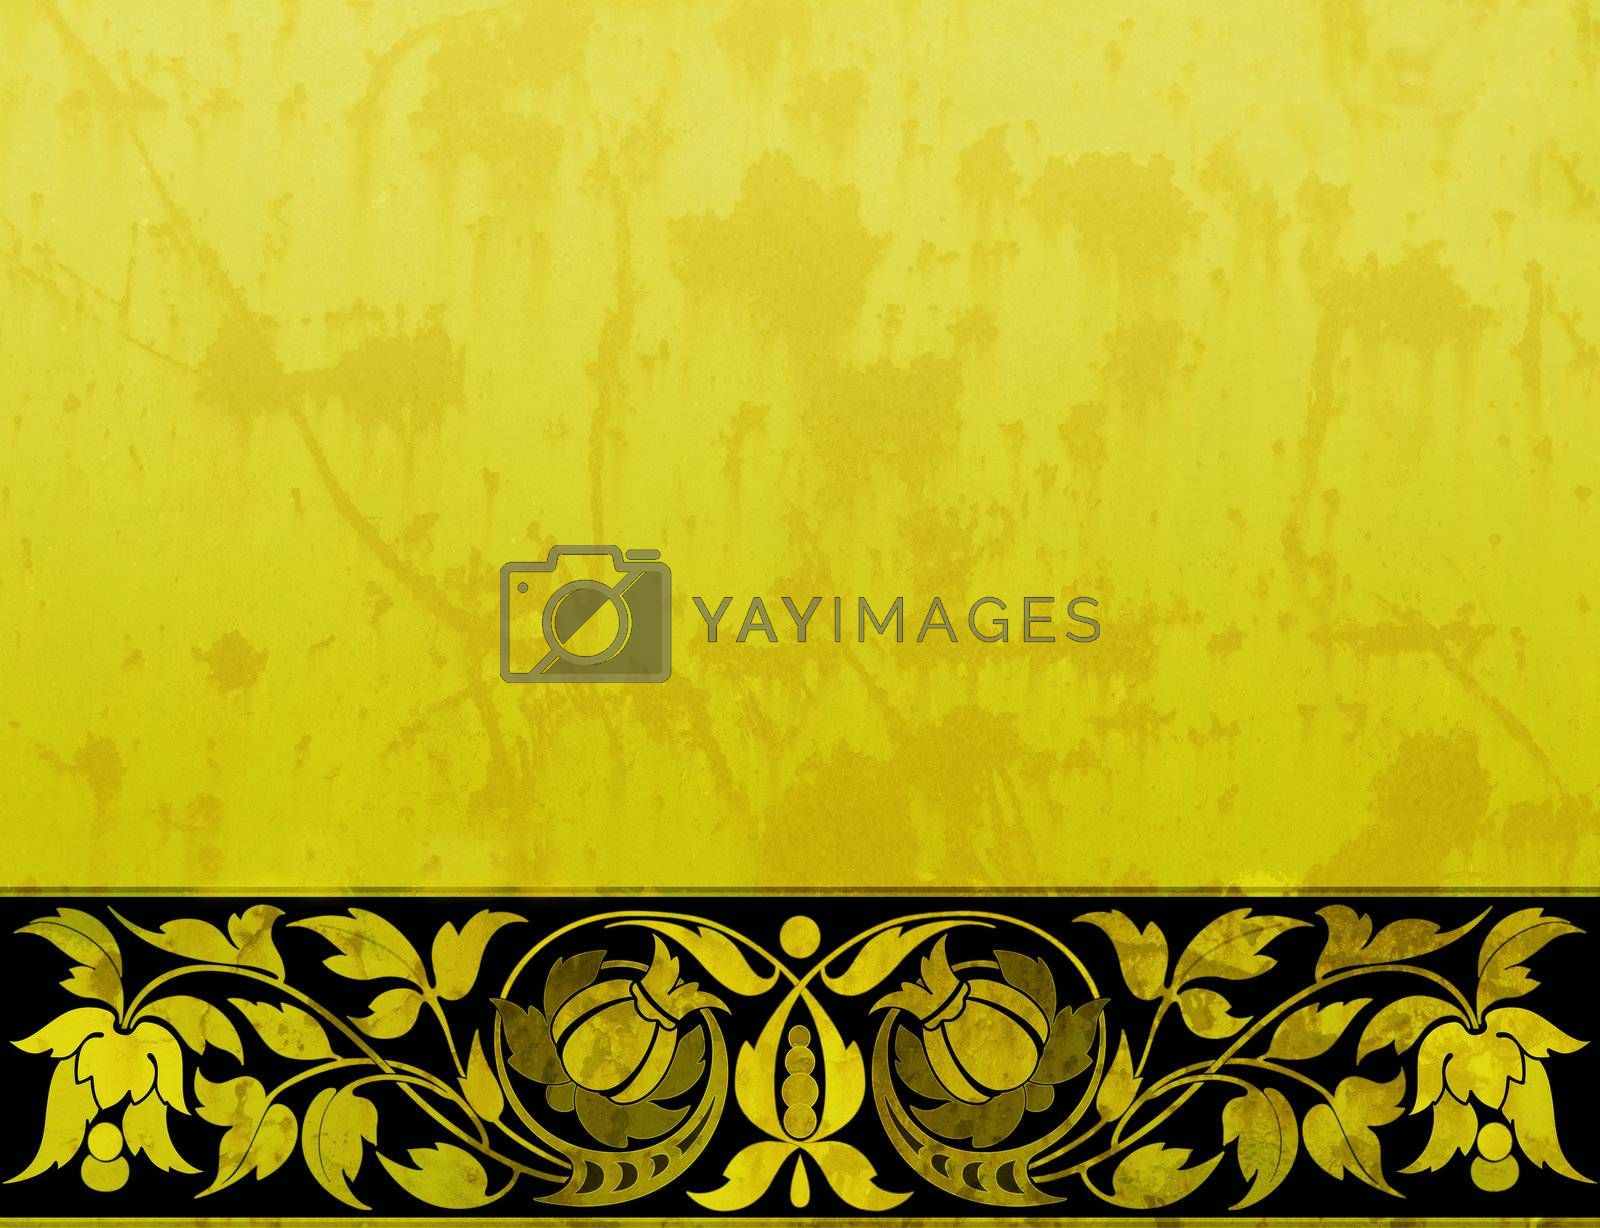 Yellow grungy background with floral ornaments